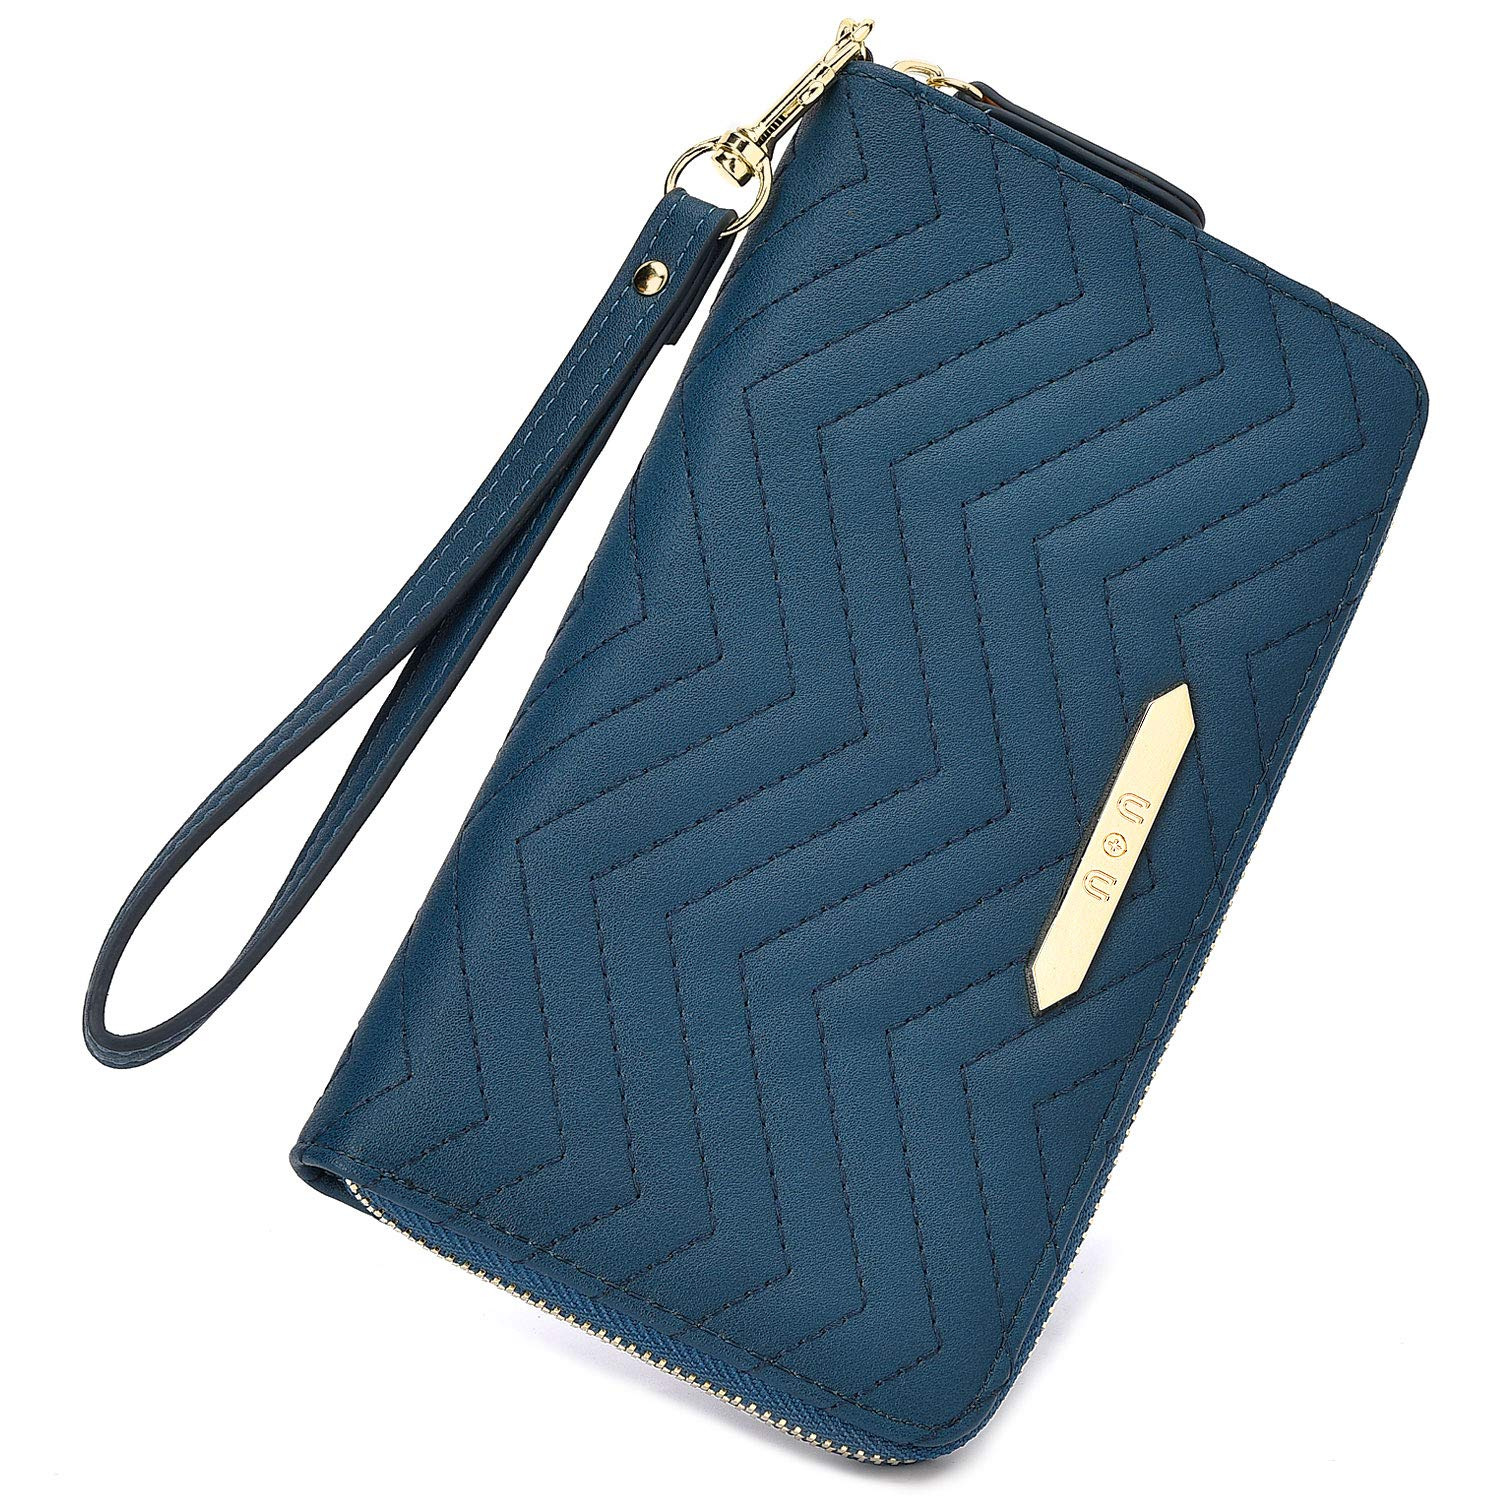 Wristlet Wallet Clutch for Women, U+U Credit Cards Holder Soft PU Leather Zip Around Purse with 15 Card Slots, bluee